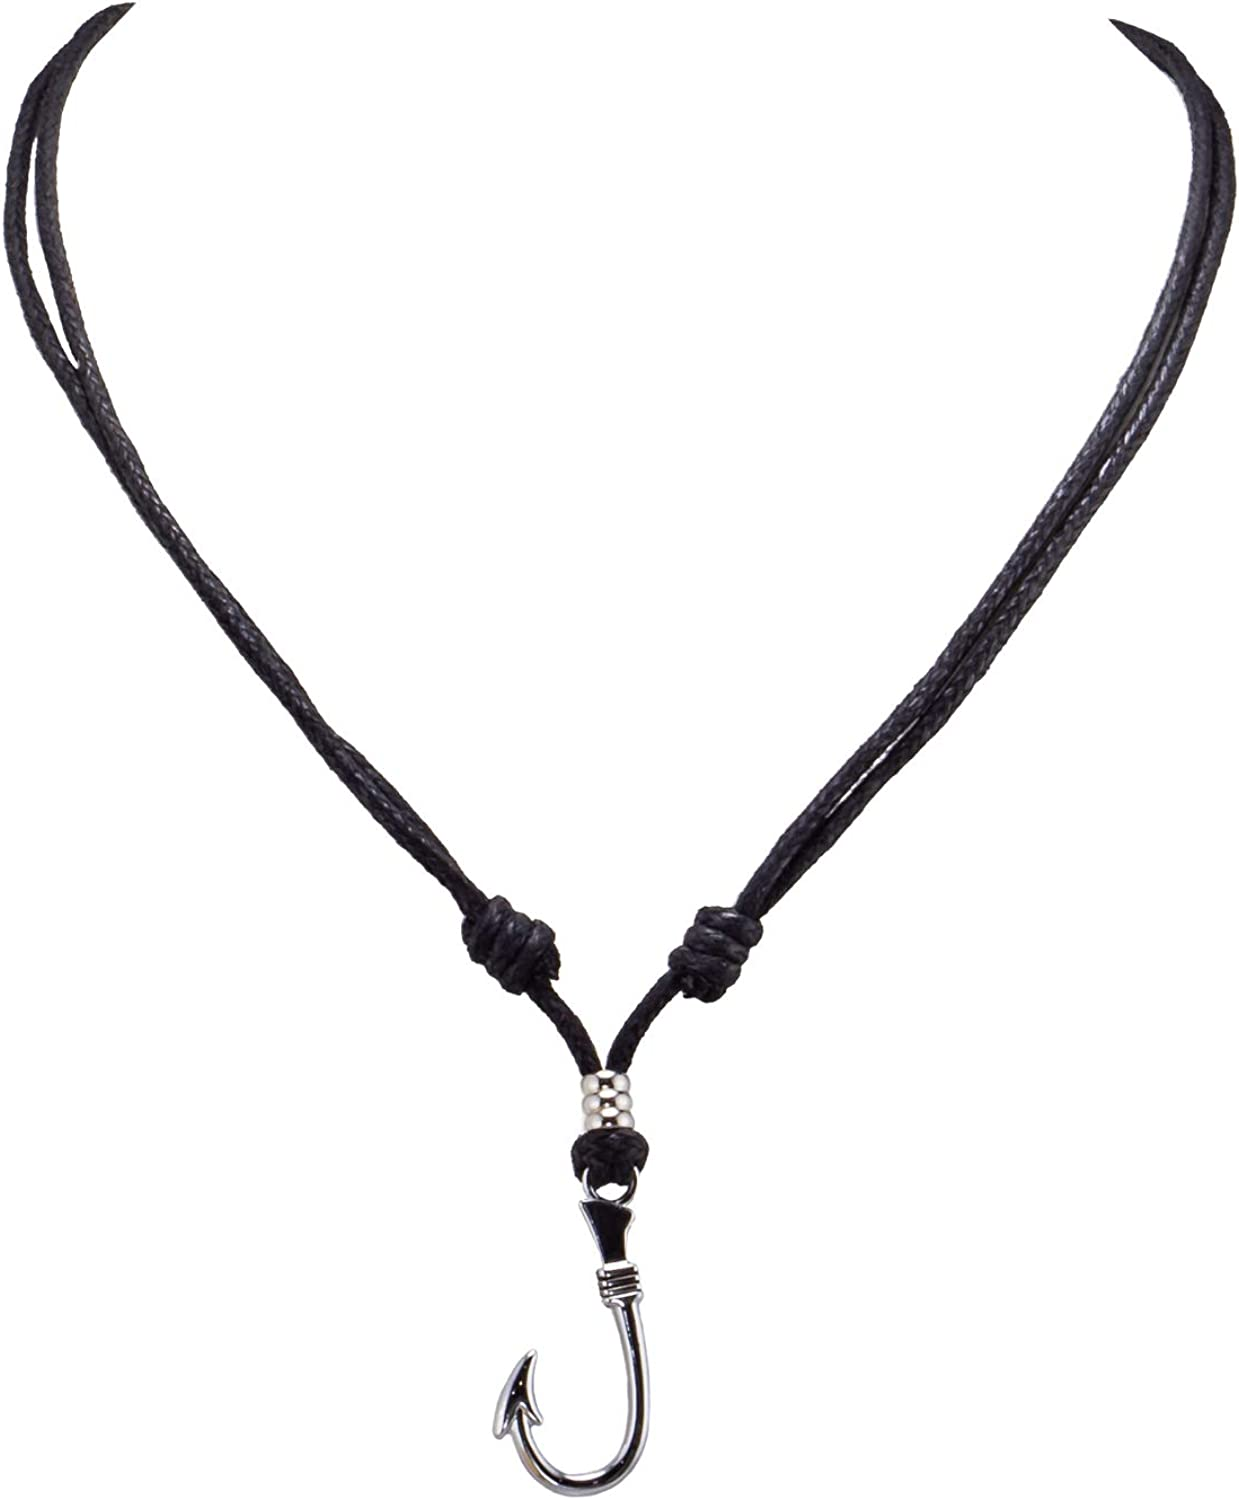 BlueRica Fish Hook Pendant on Adjustable Black Rope Cord Necklace